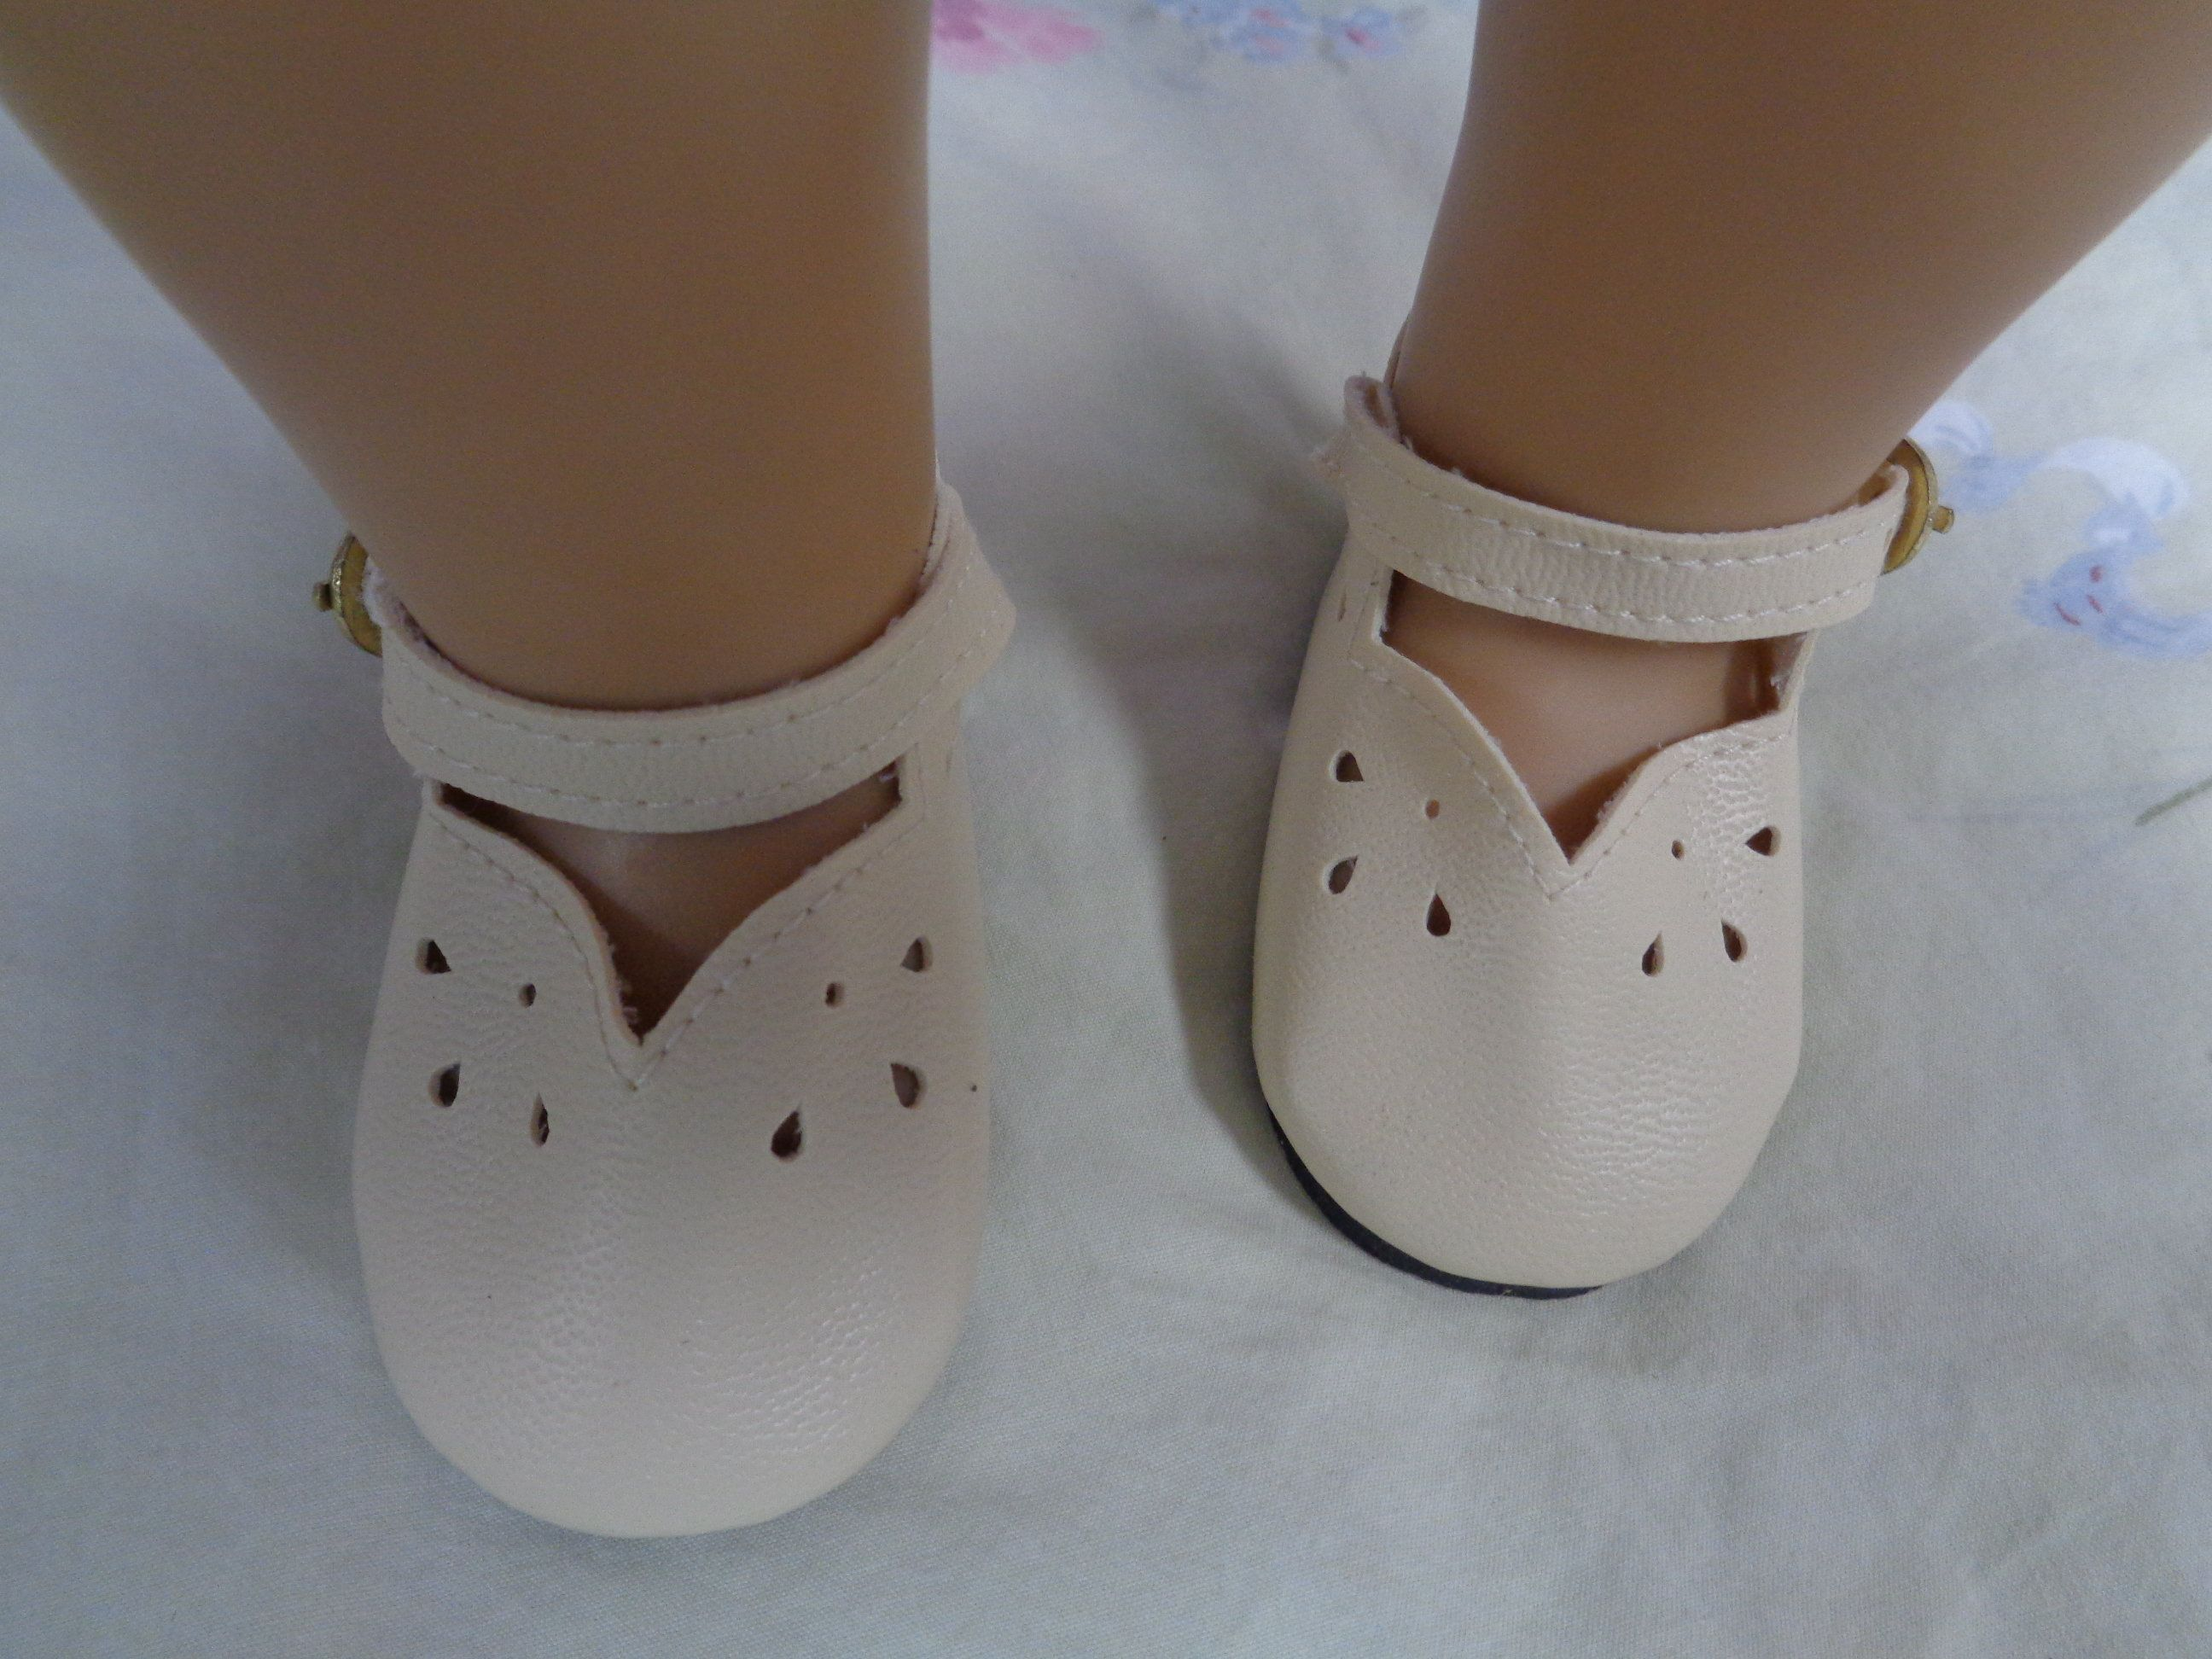 15e1ccb0fcb9b Ivory Leather Doll Shoes for 18 inch Dolls- Shoes fits 18